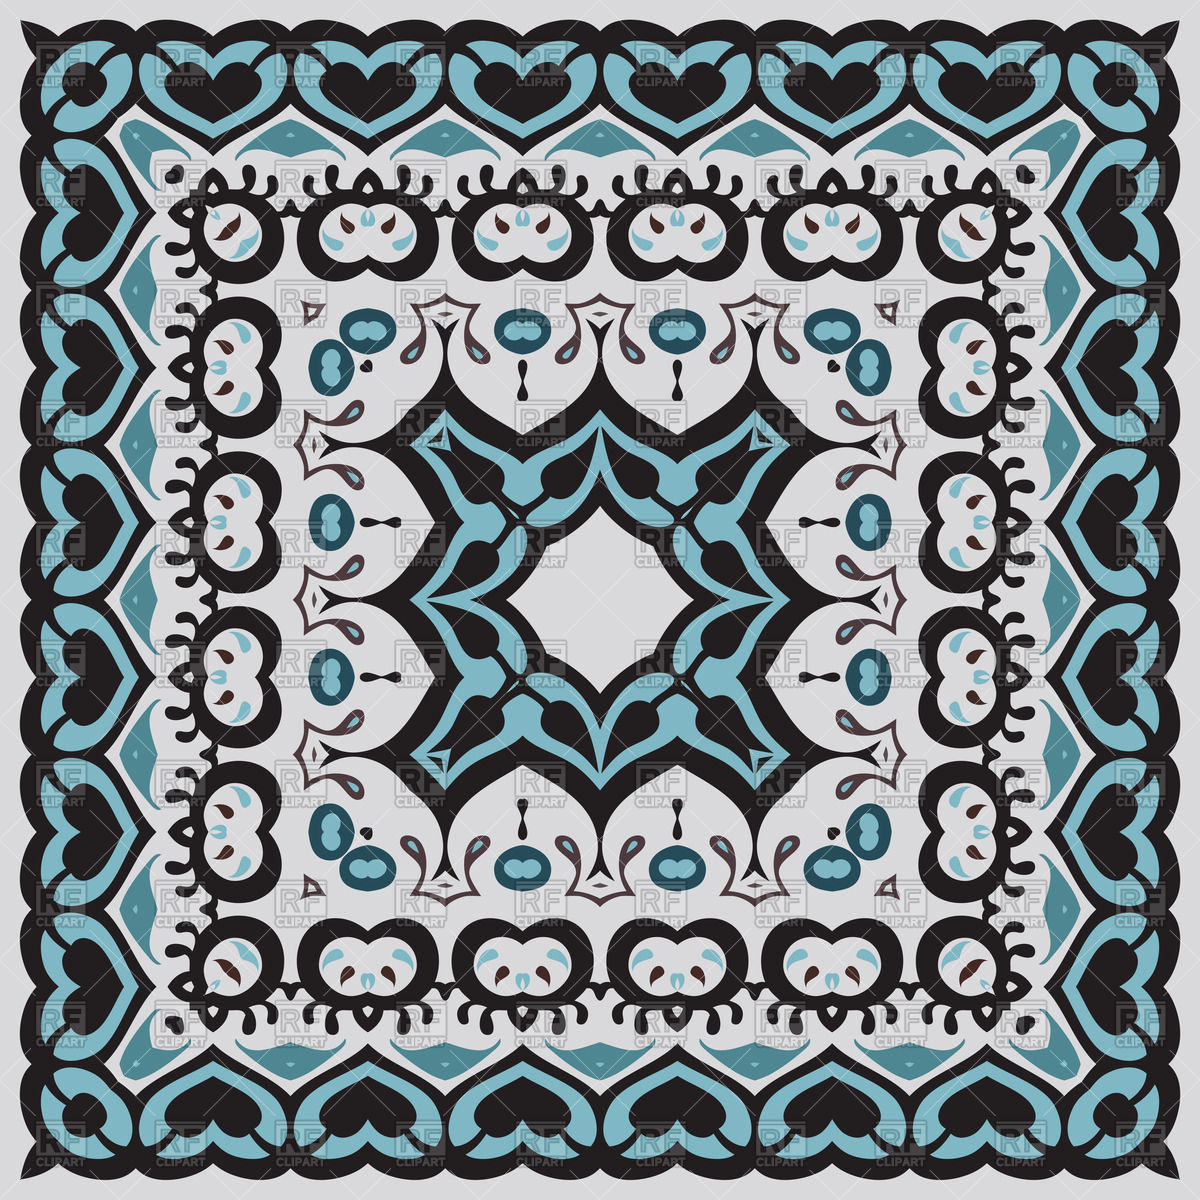 1200x1200 Ethnic Ornament For Bandana Vector Image Vector Artwork Of